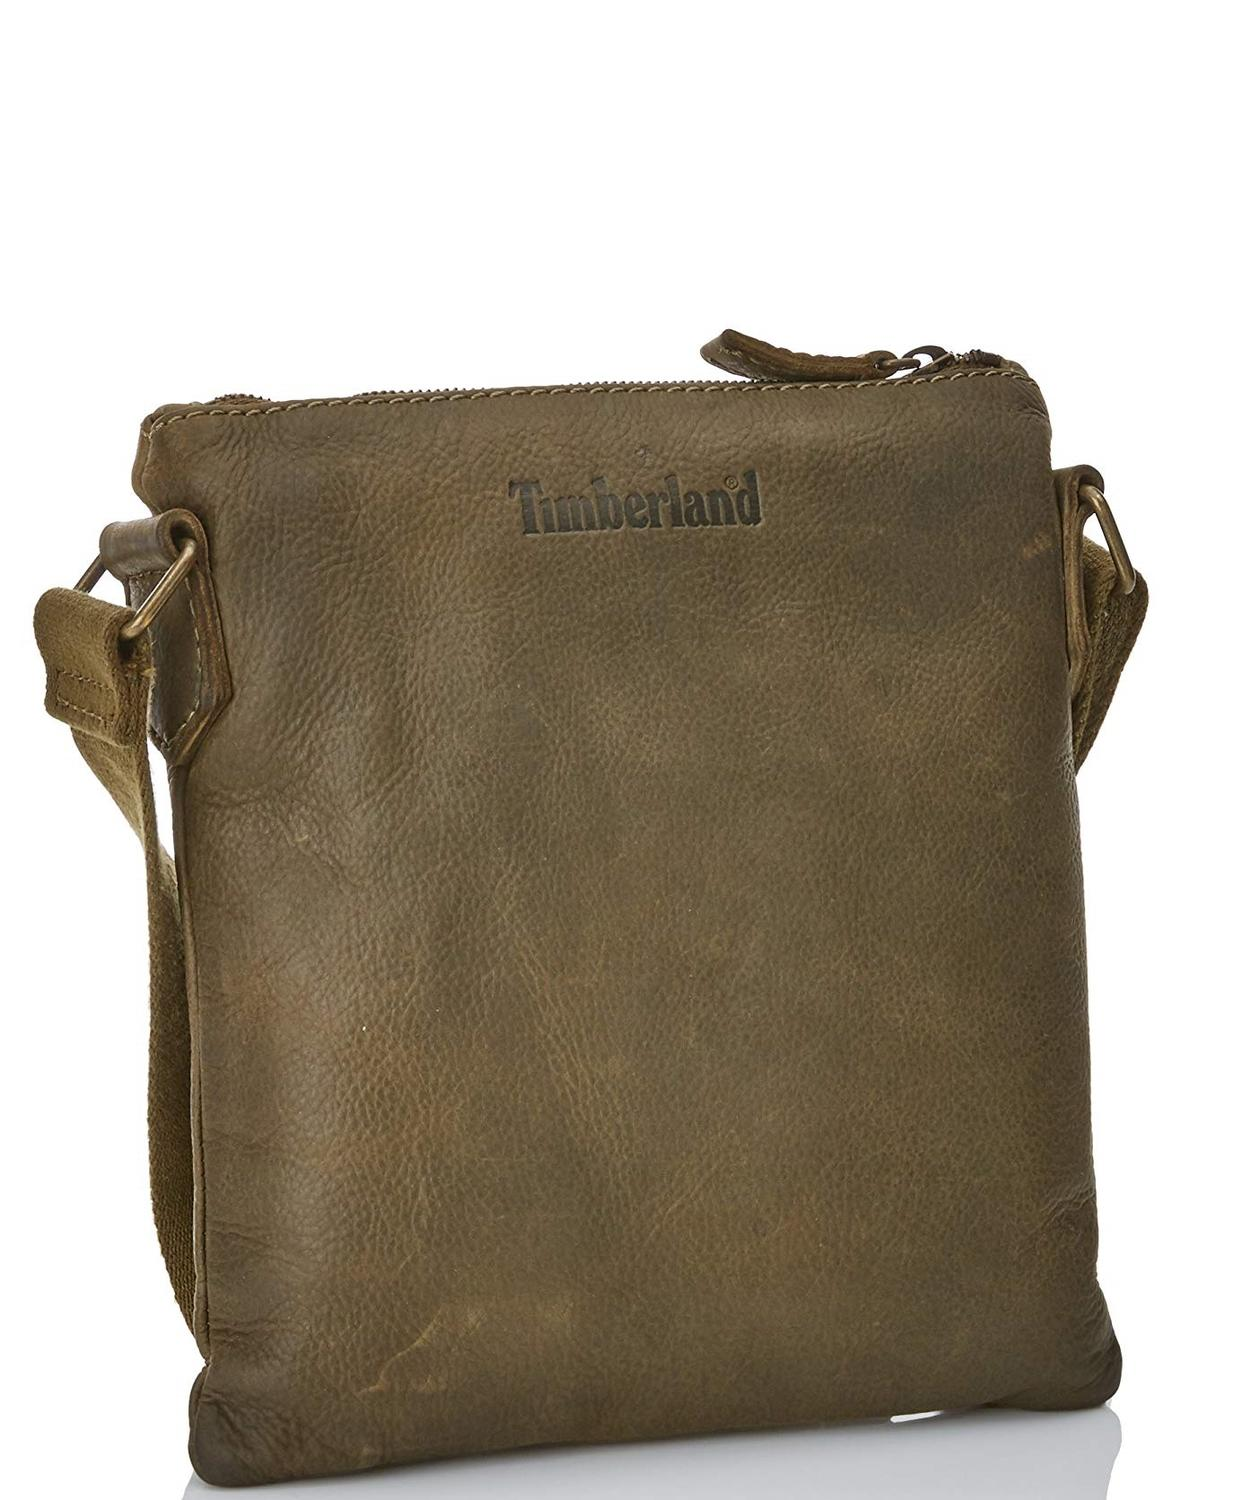 599322c5e084 Timberland bag adkins line in leather shop online at best prices jpg  1242x1500 Timberland bag